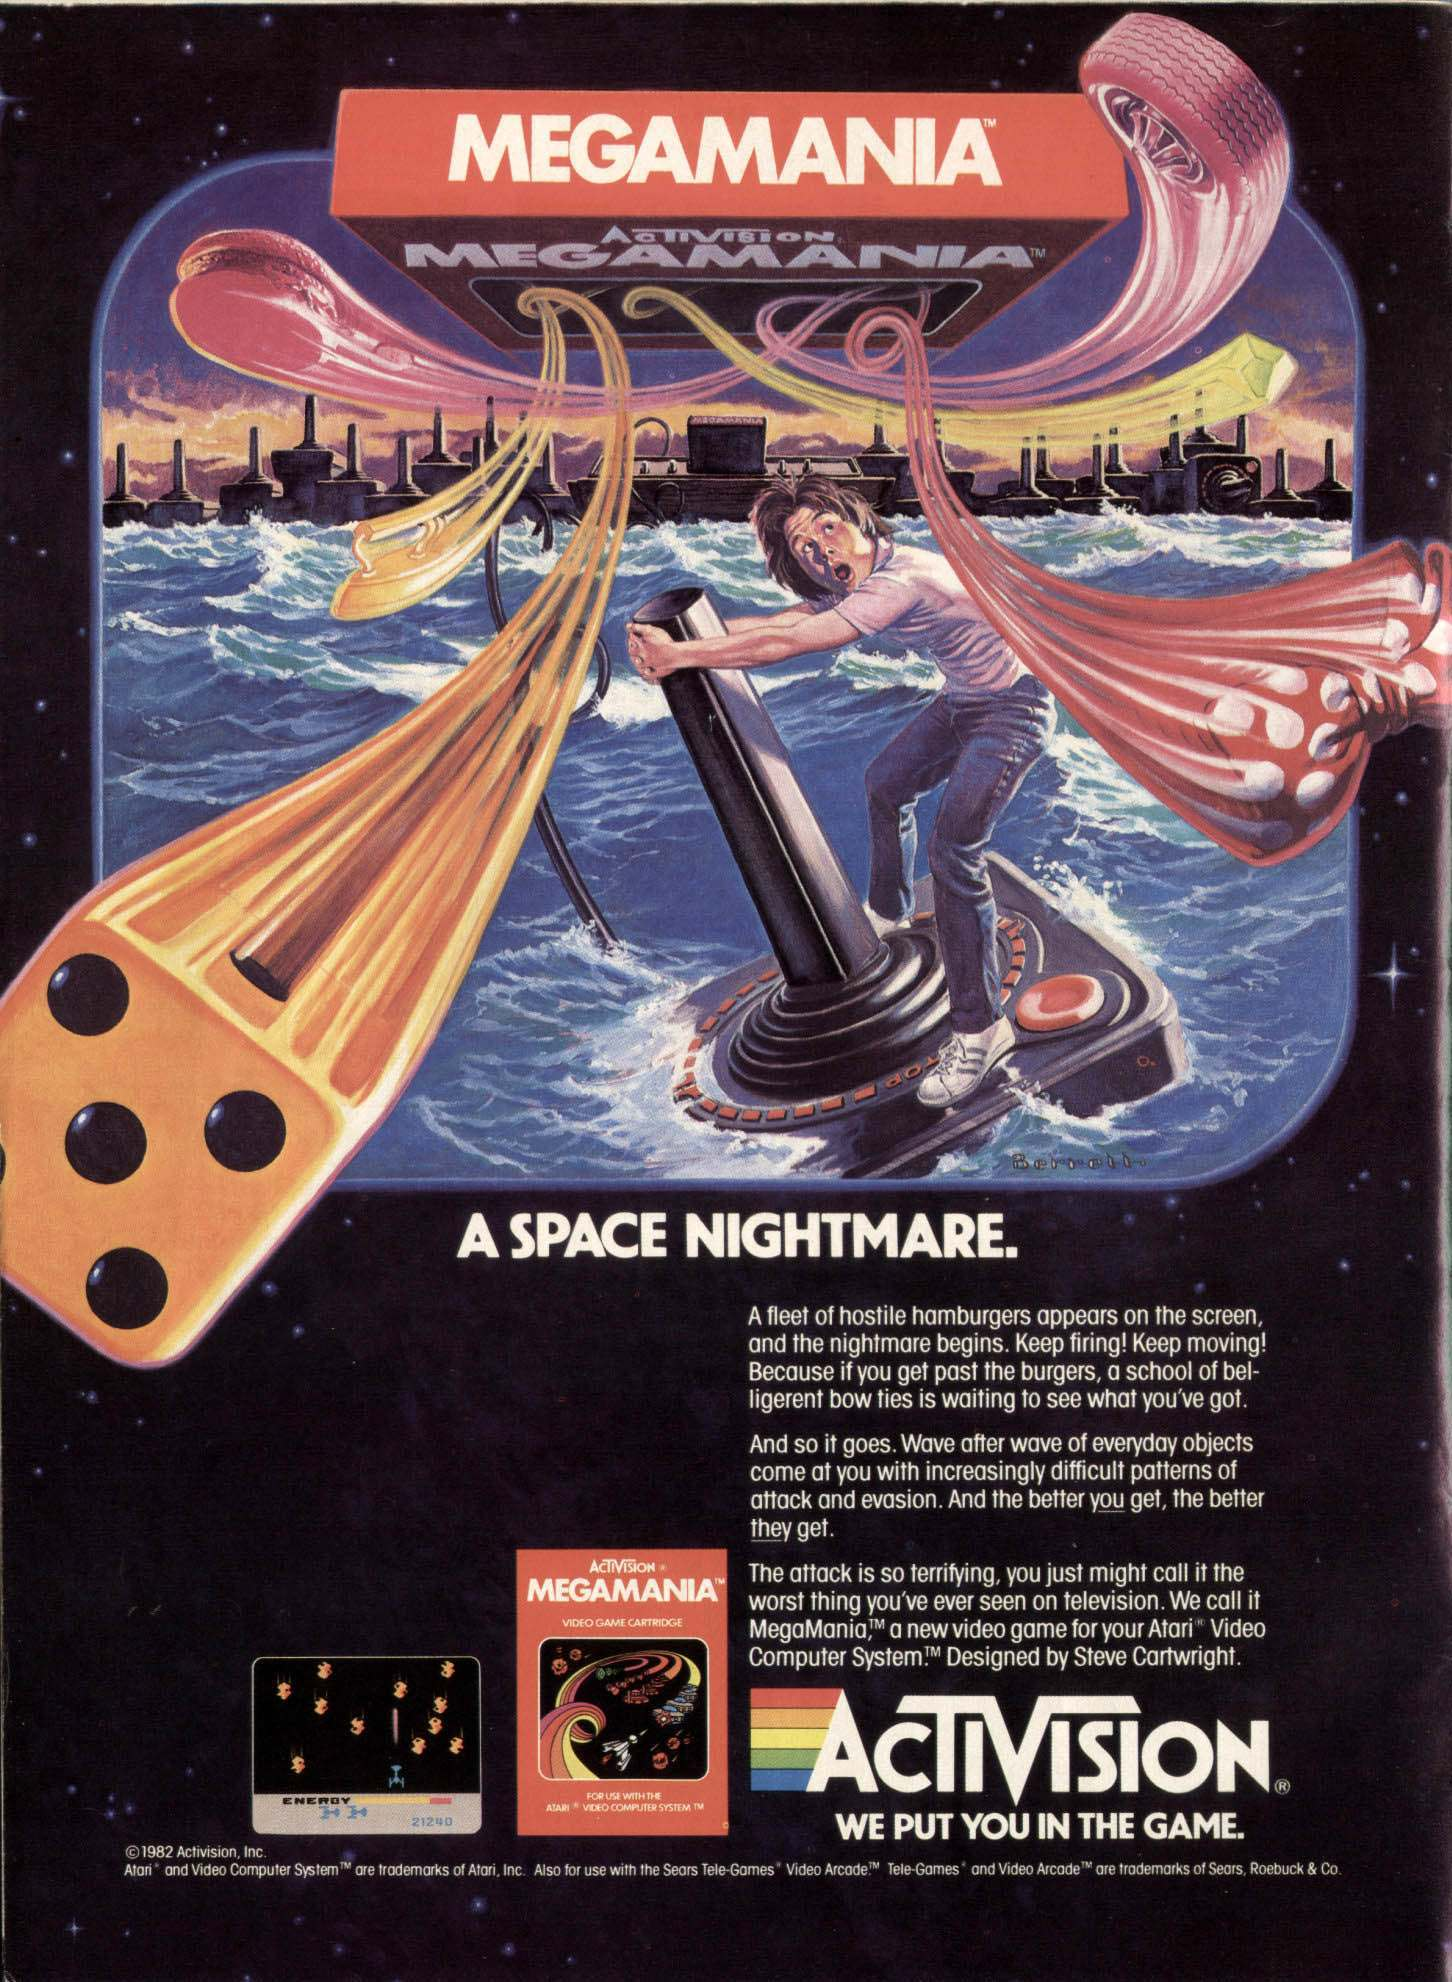 1982 video game